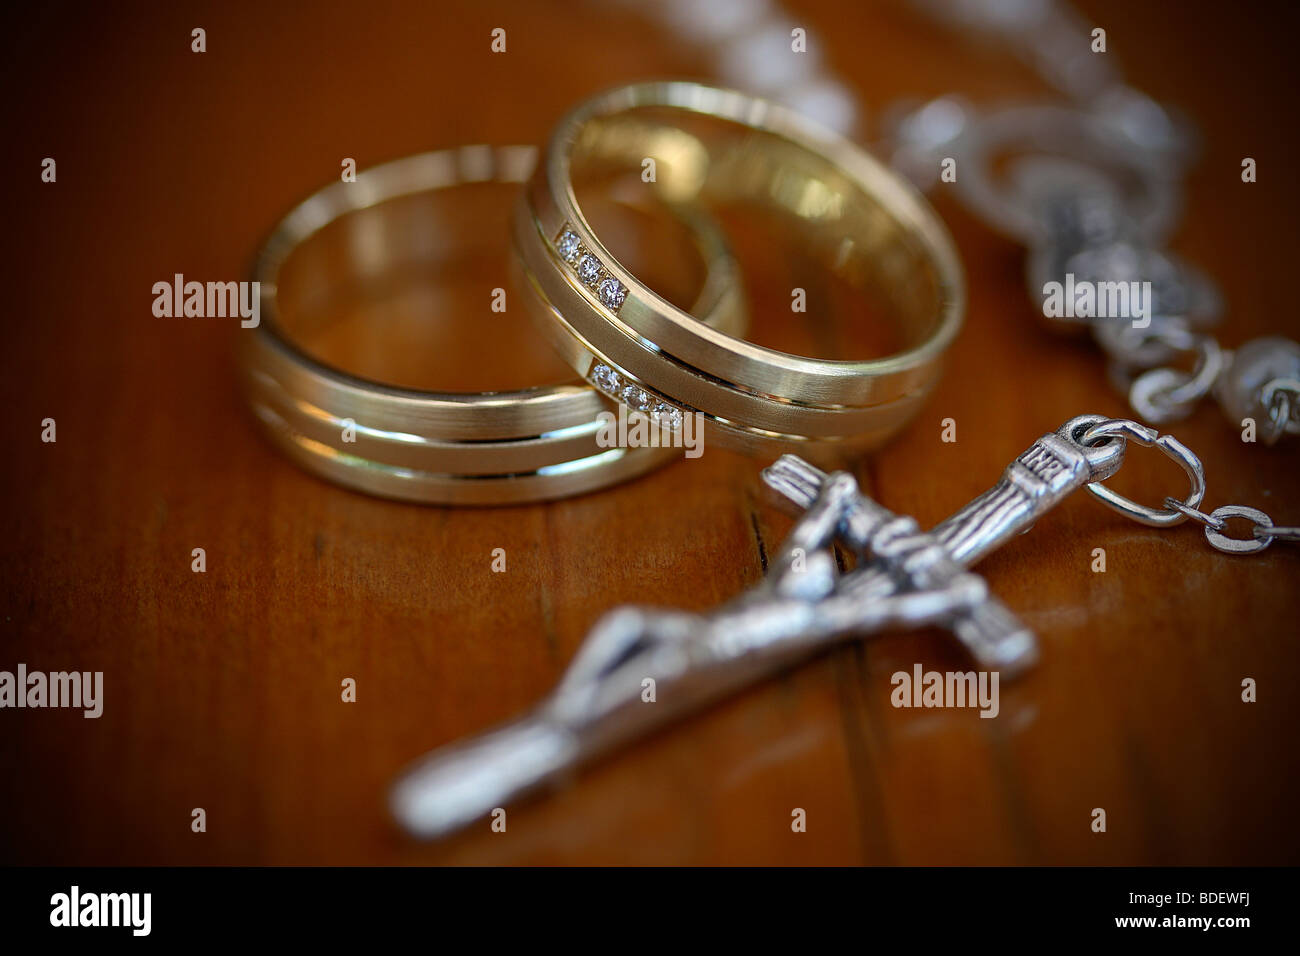 Pair Of Wedding Rings With Christian Crucifix On Chain  Stock Image